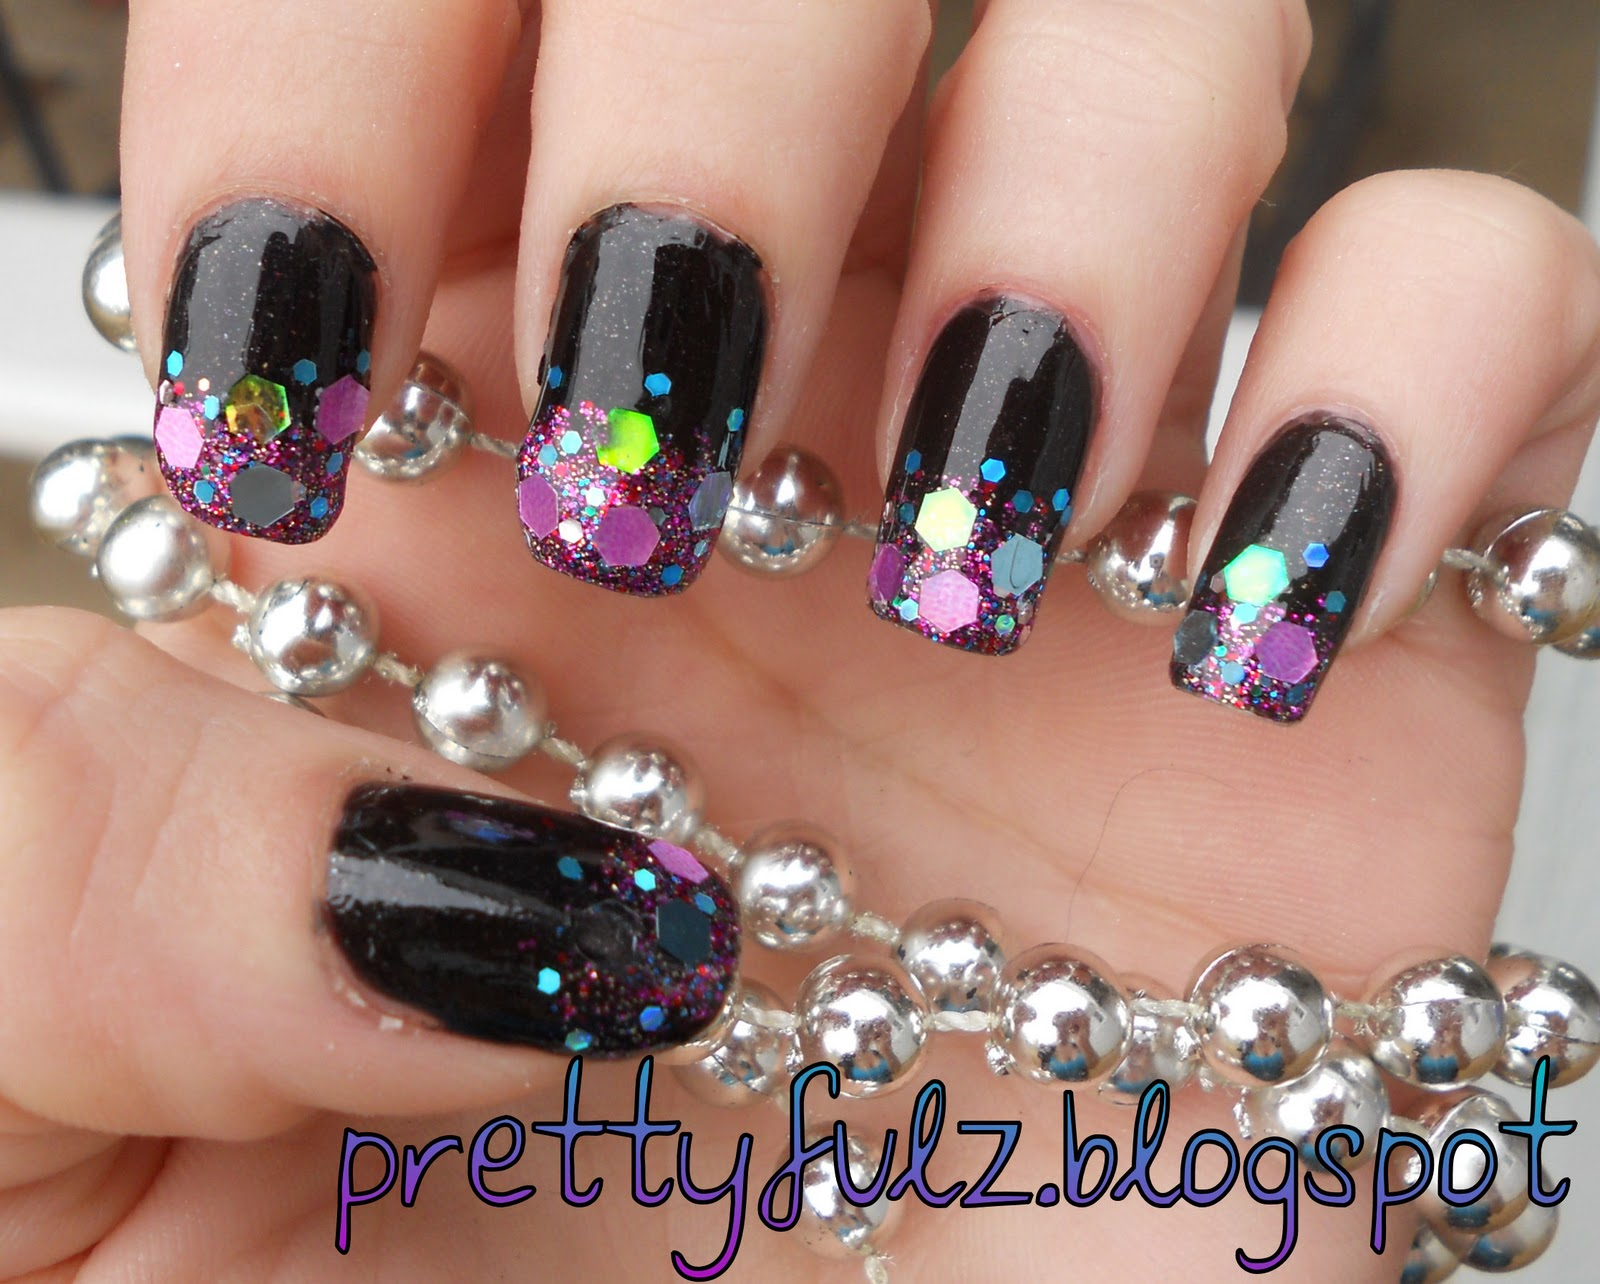 Cute Glitter Nail Art Designs